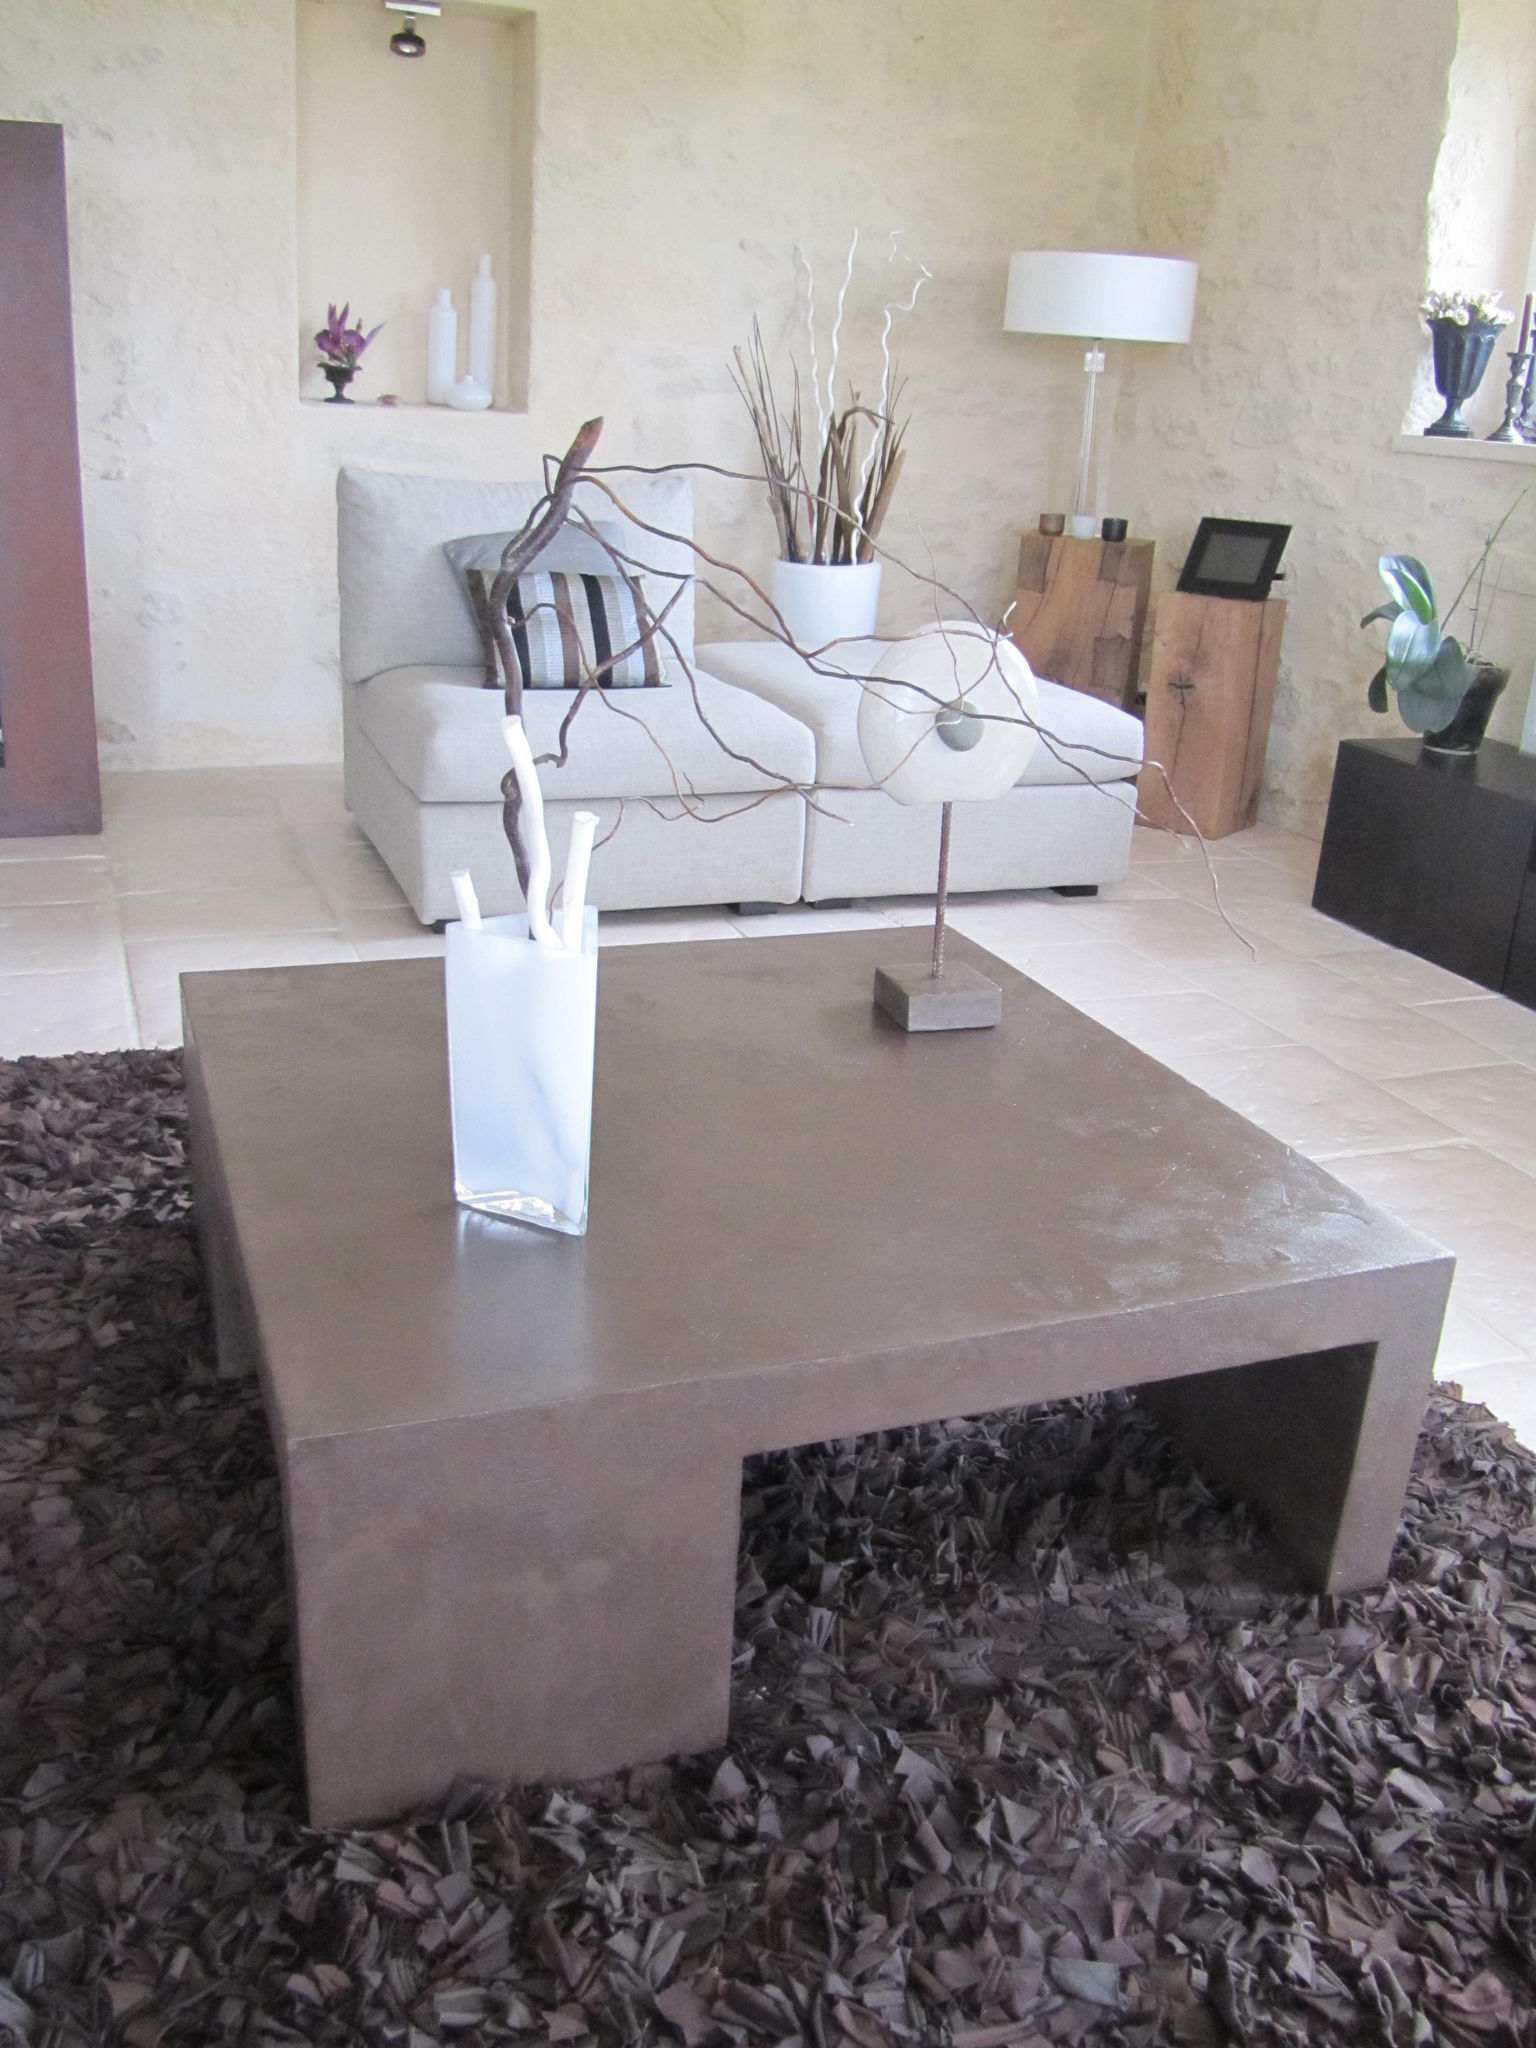 Tables Basses De Salon Pliantes Table Basse De Salon En Beton Cire Photo De Beton Cire